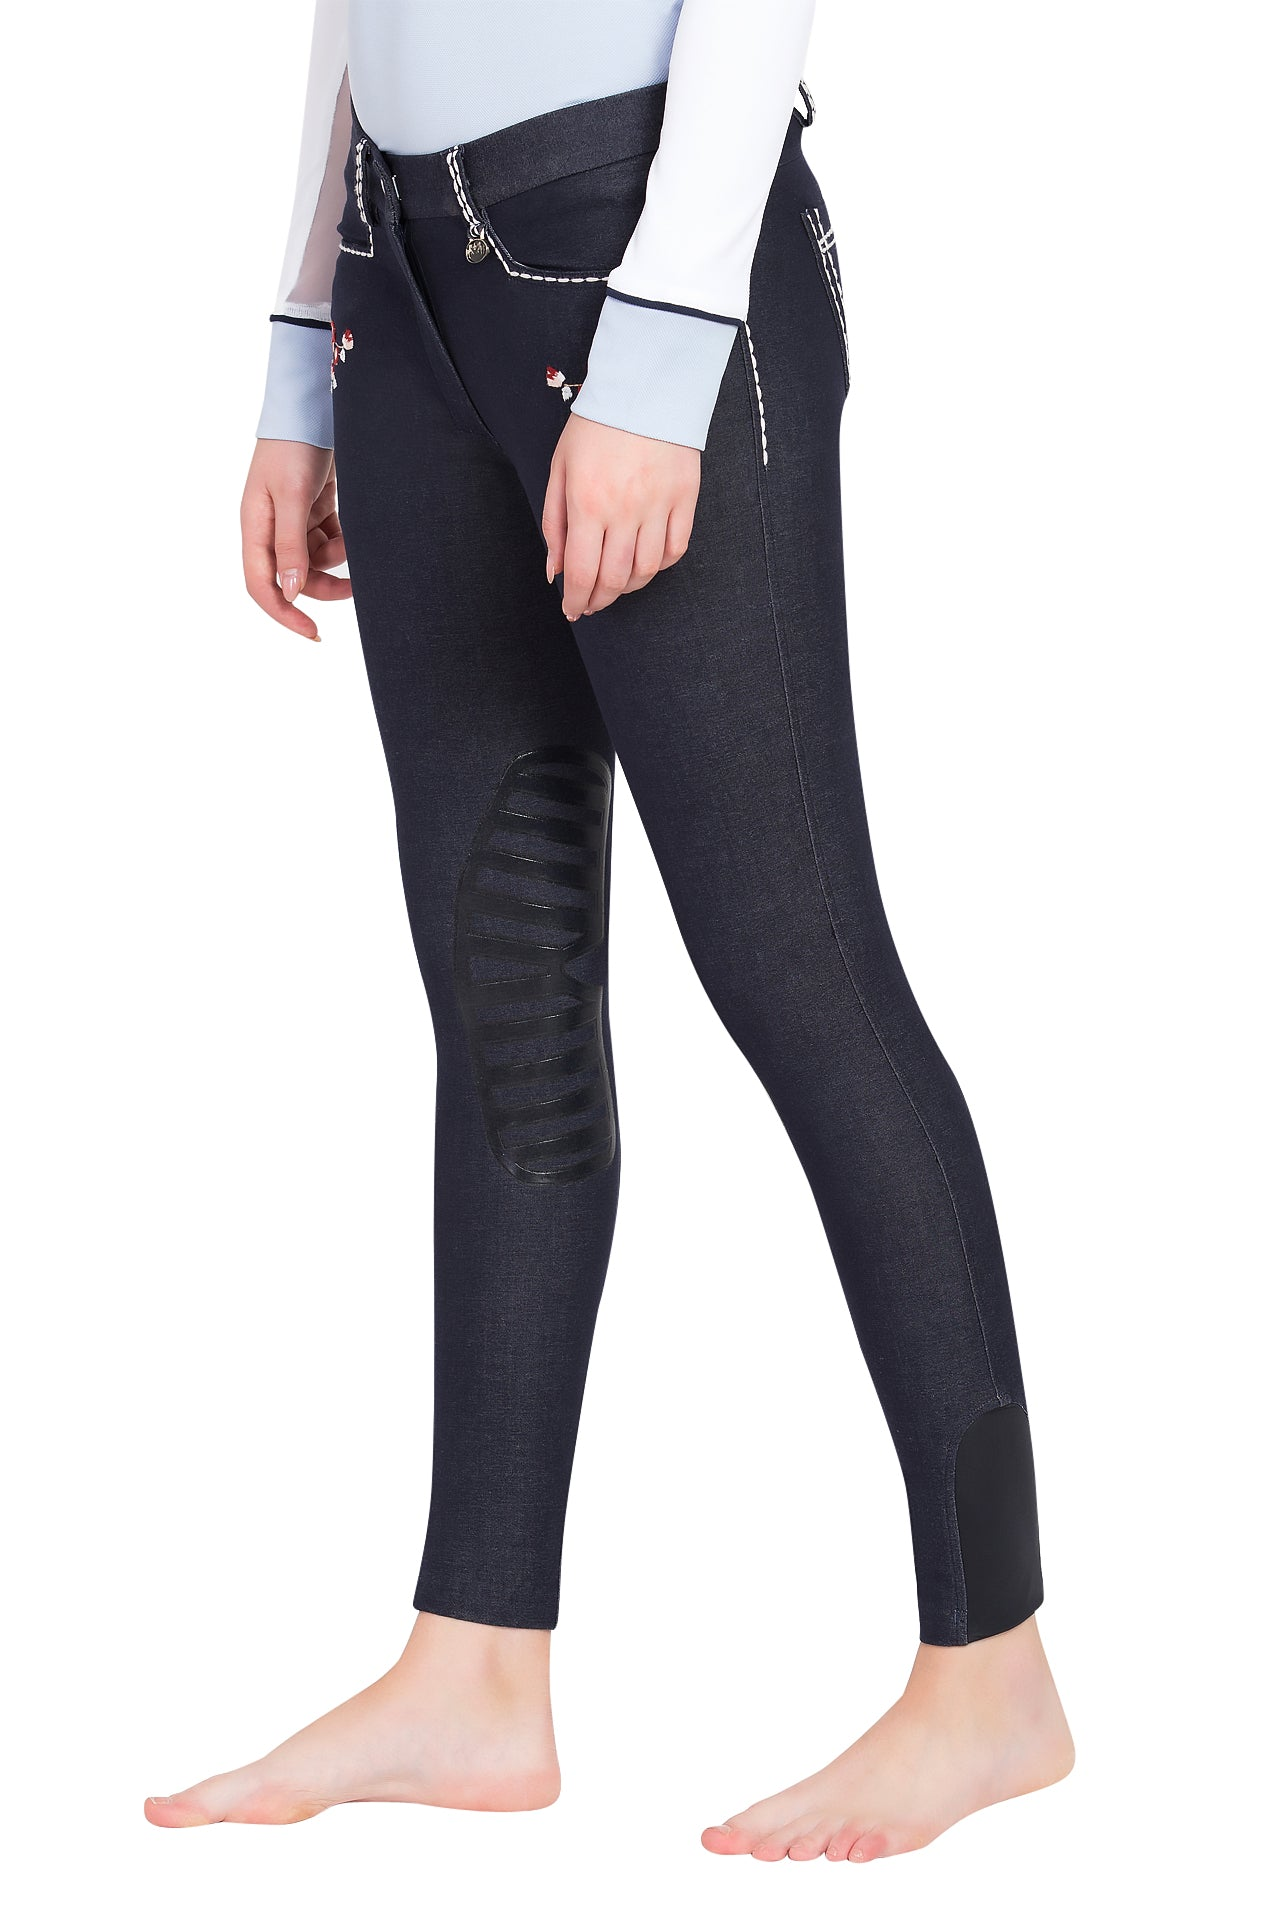 Equine Couture Ladies Alice Denim Embroidered Breeches - Equine Couture - Breeches.com